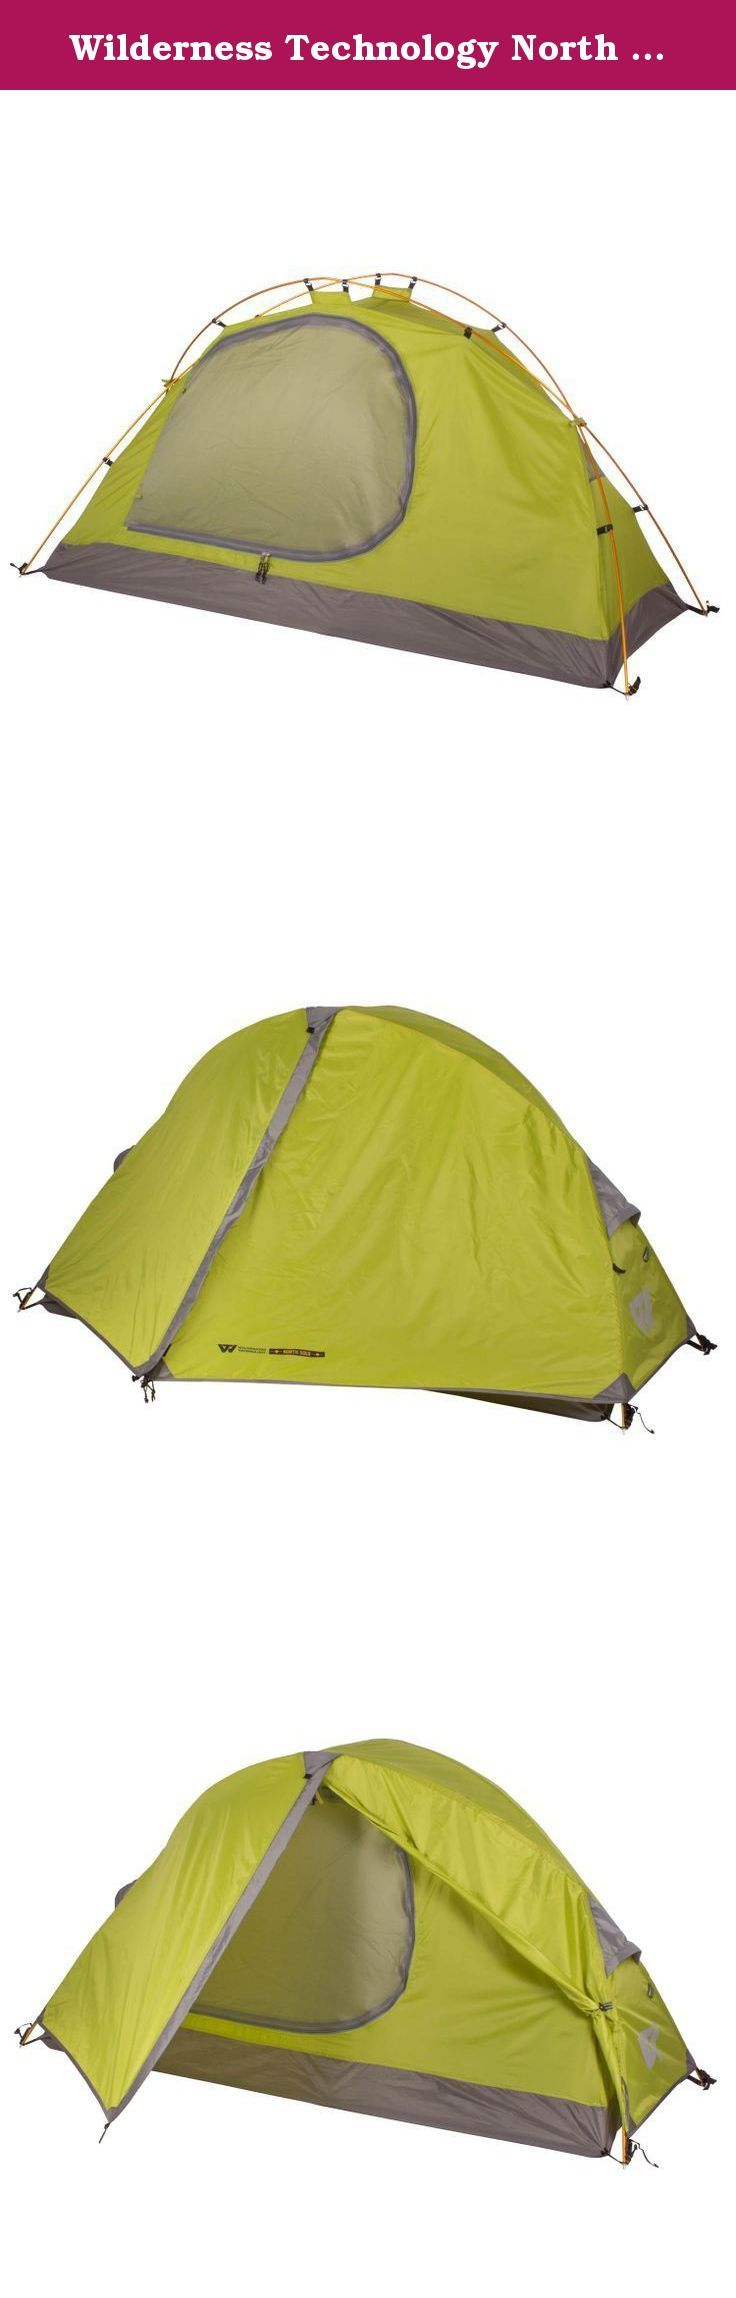 Wilderness Technology North Solo Tent - 1 Person. No mater what direction you are headed on your next adventure, the Wilderness Technology North Solo will be there to keep you protected from the elements. This one person tent features a large entry with vestibule, lightweight aluminum poles, and a full rain fly for rainy days. The tent floor and rain fly are treated with a polyurethane waterproof coating to keep out the morning dew. Perfect for solo backpacking or motorcycle camping.